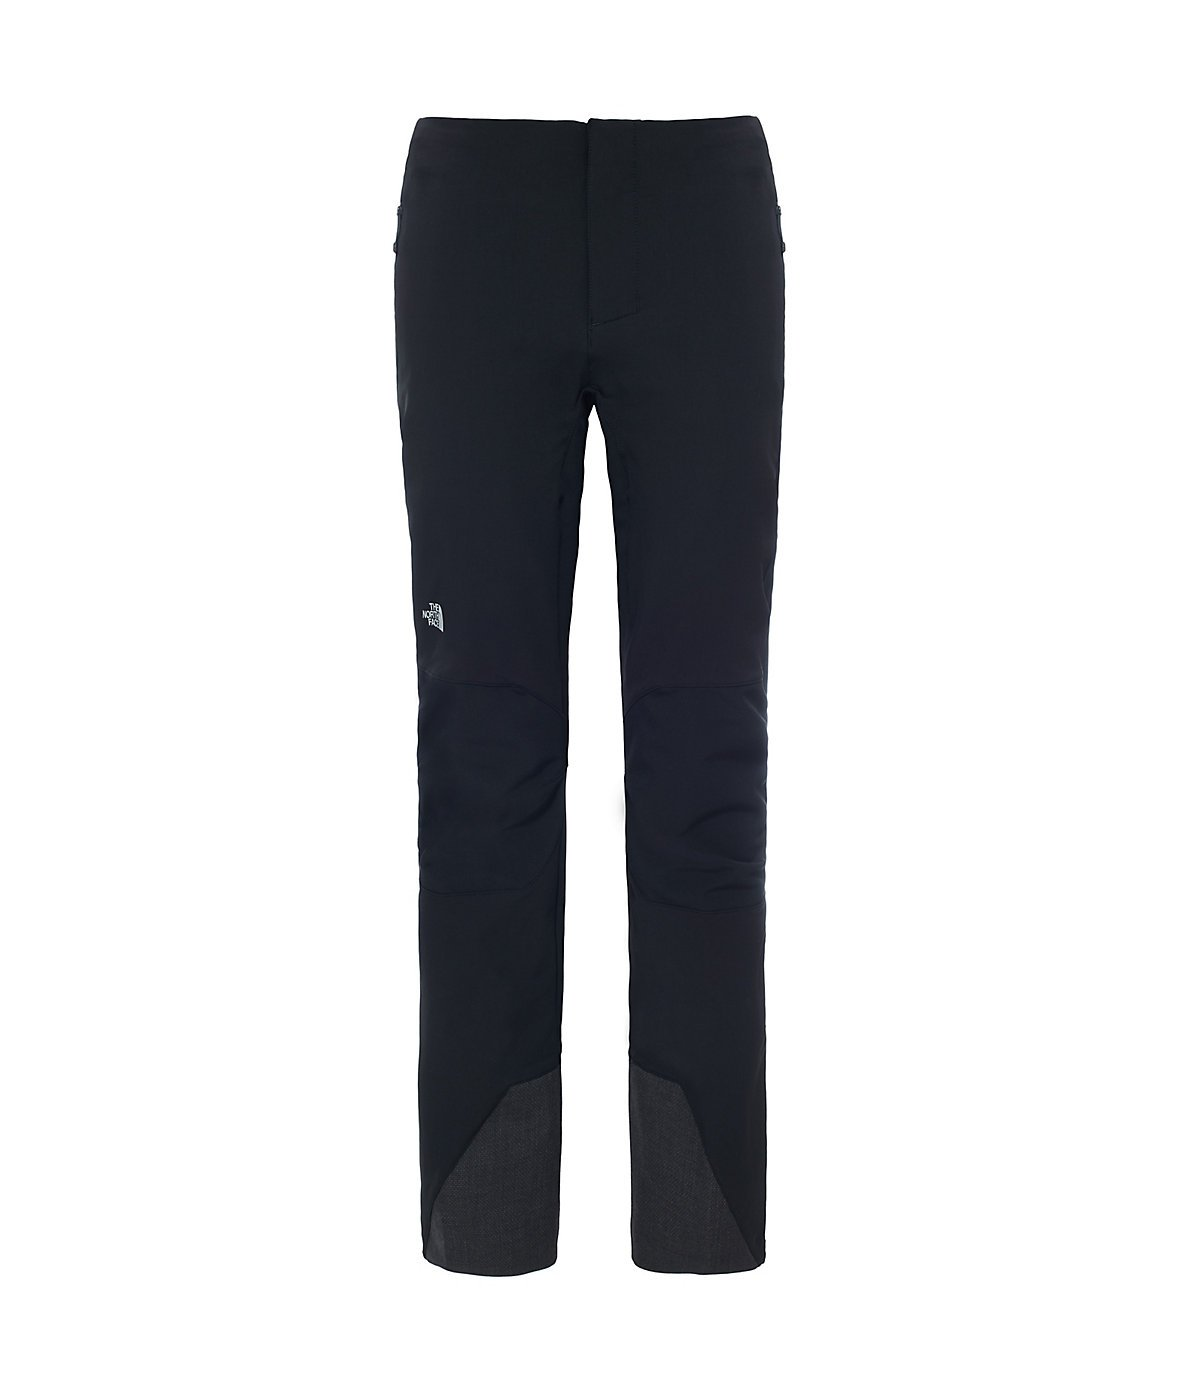 North Face W Orion Pantalone, Nero/Tnf Black, 4/REG